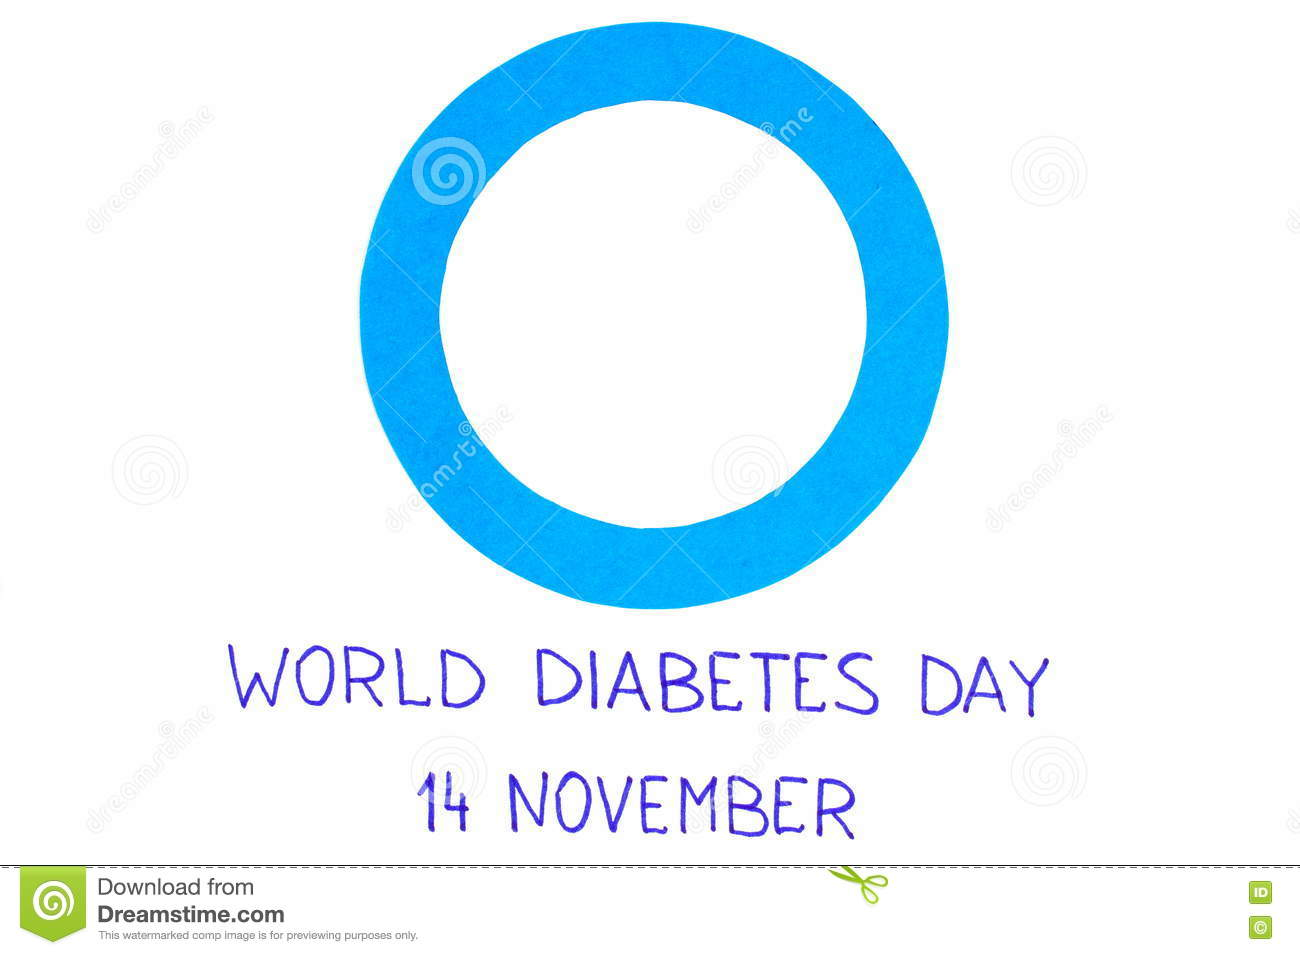 blue circle of paper on white background symbol of world diabetes blue circle of paper on white background symbol of world diabetes day